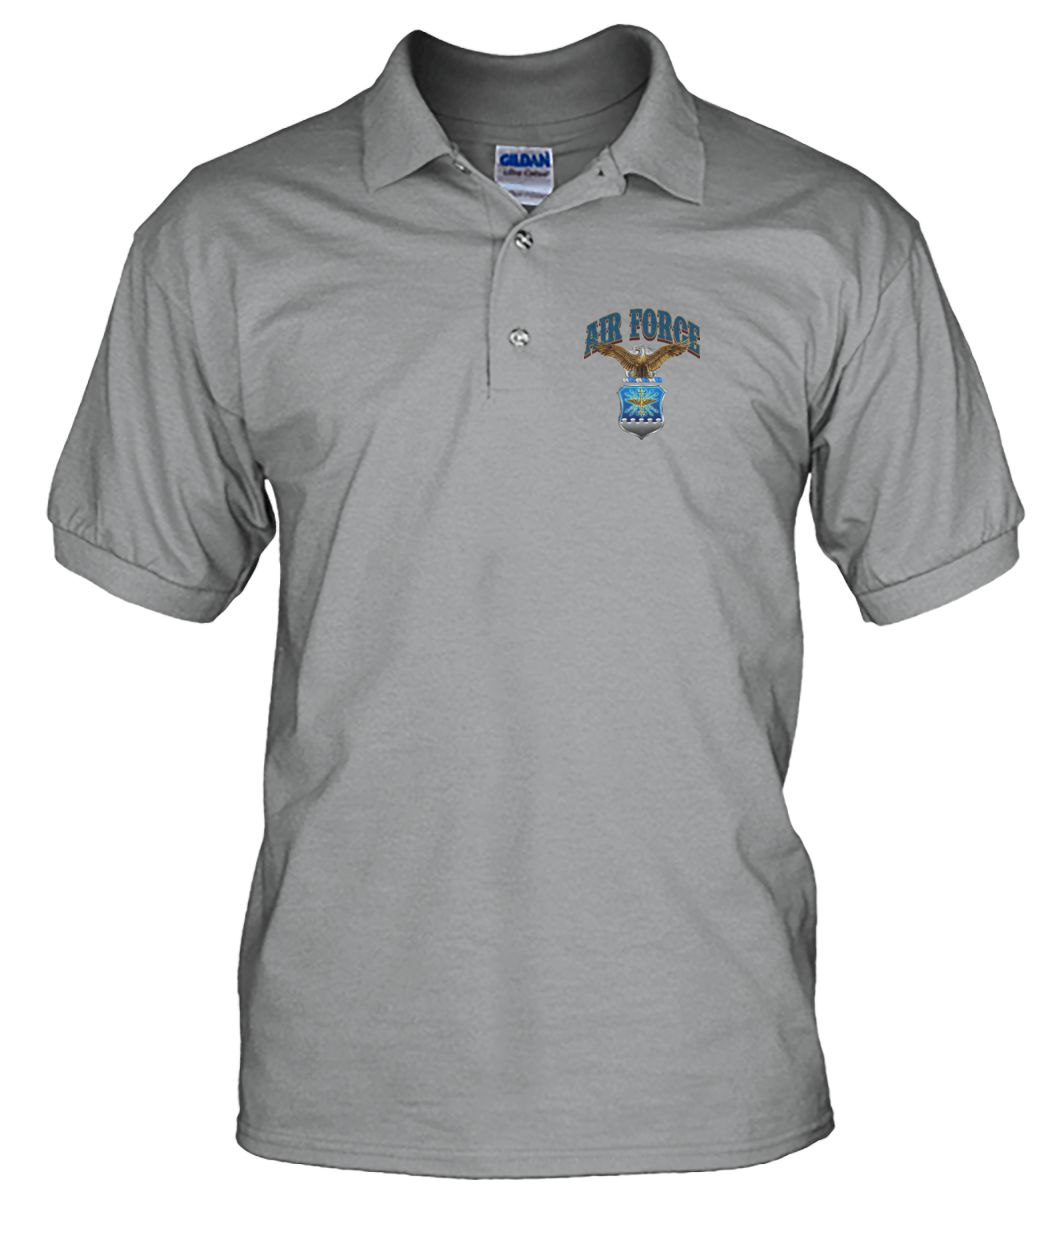 Air Force freedom is not free i paid for it U.S veteran polo shirt Men's Polo